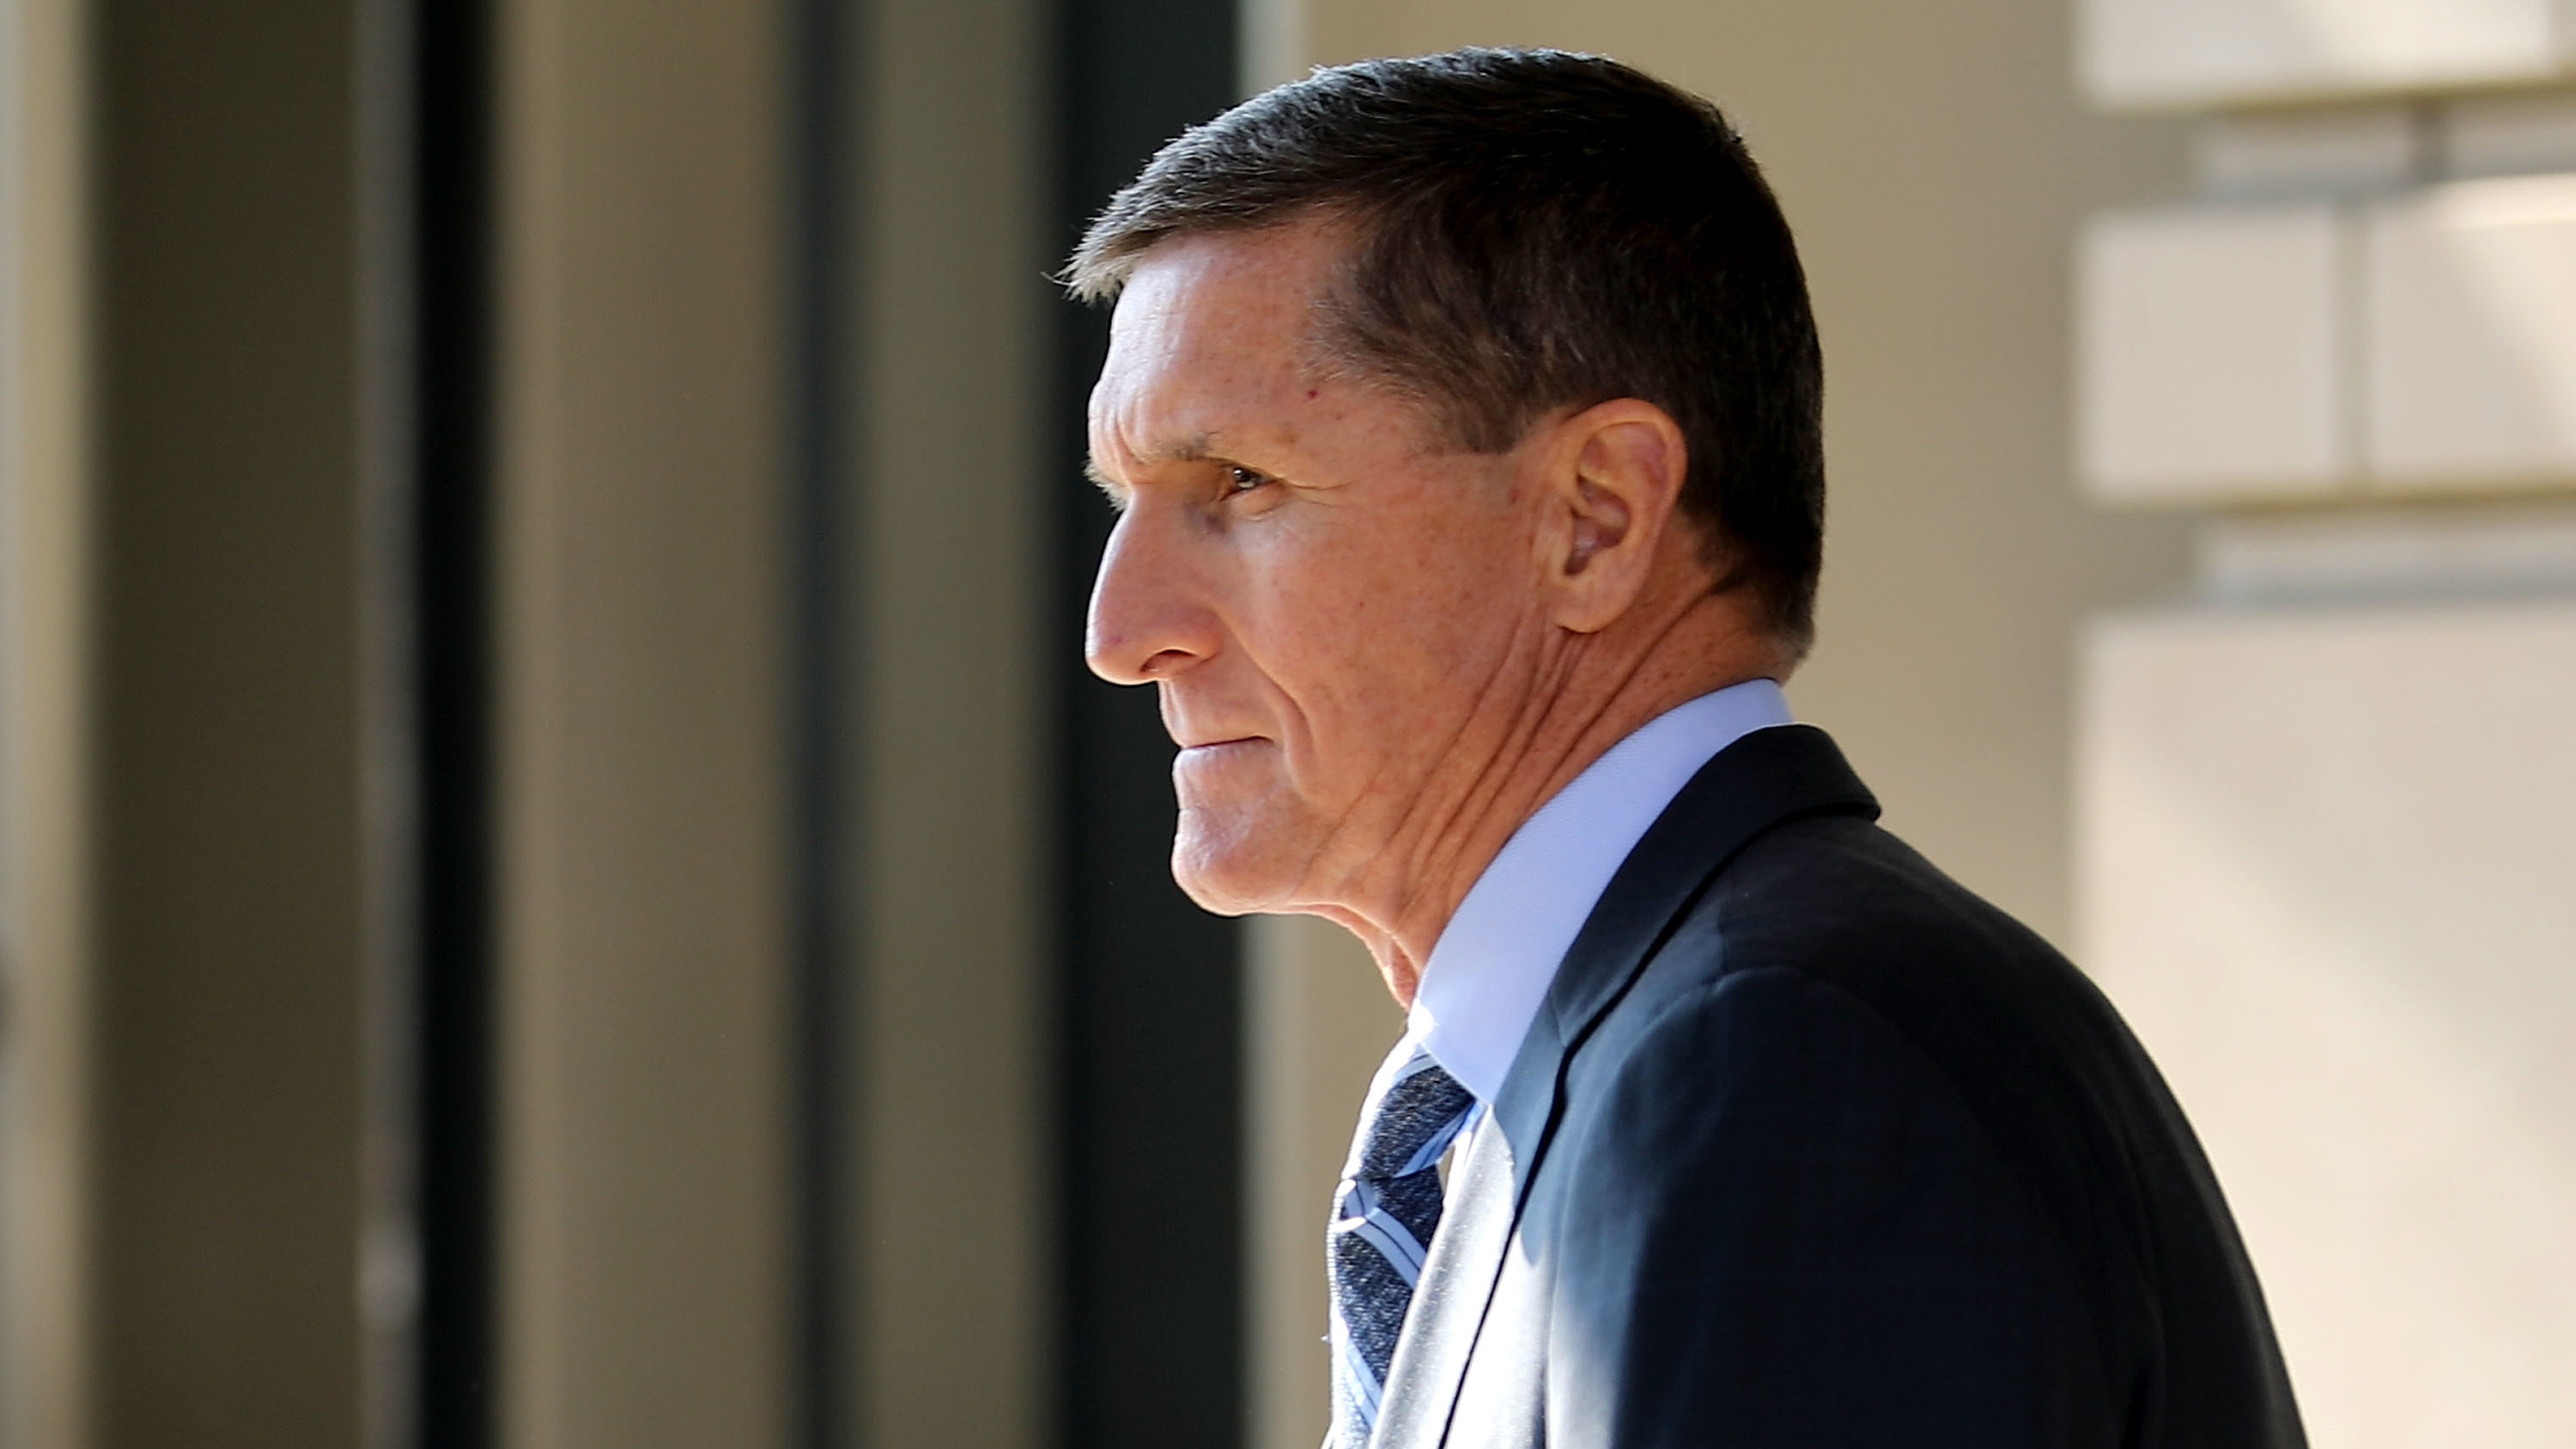 Flynn told a business associate Russian sanctions would be 'ripped up'